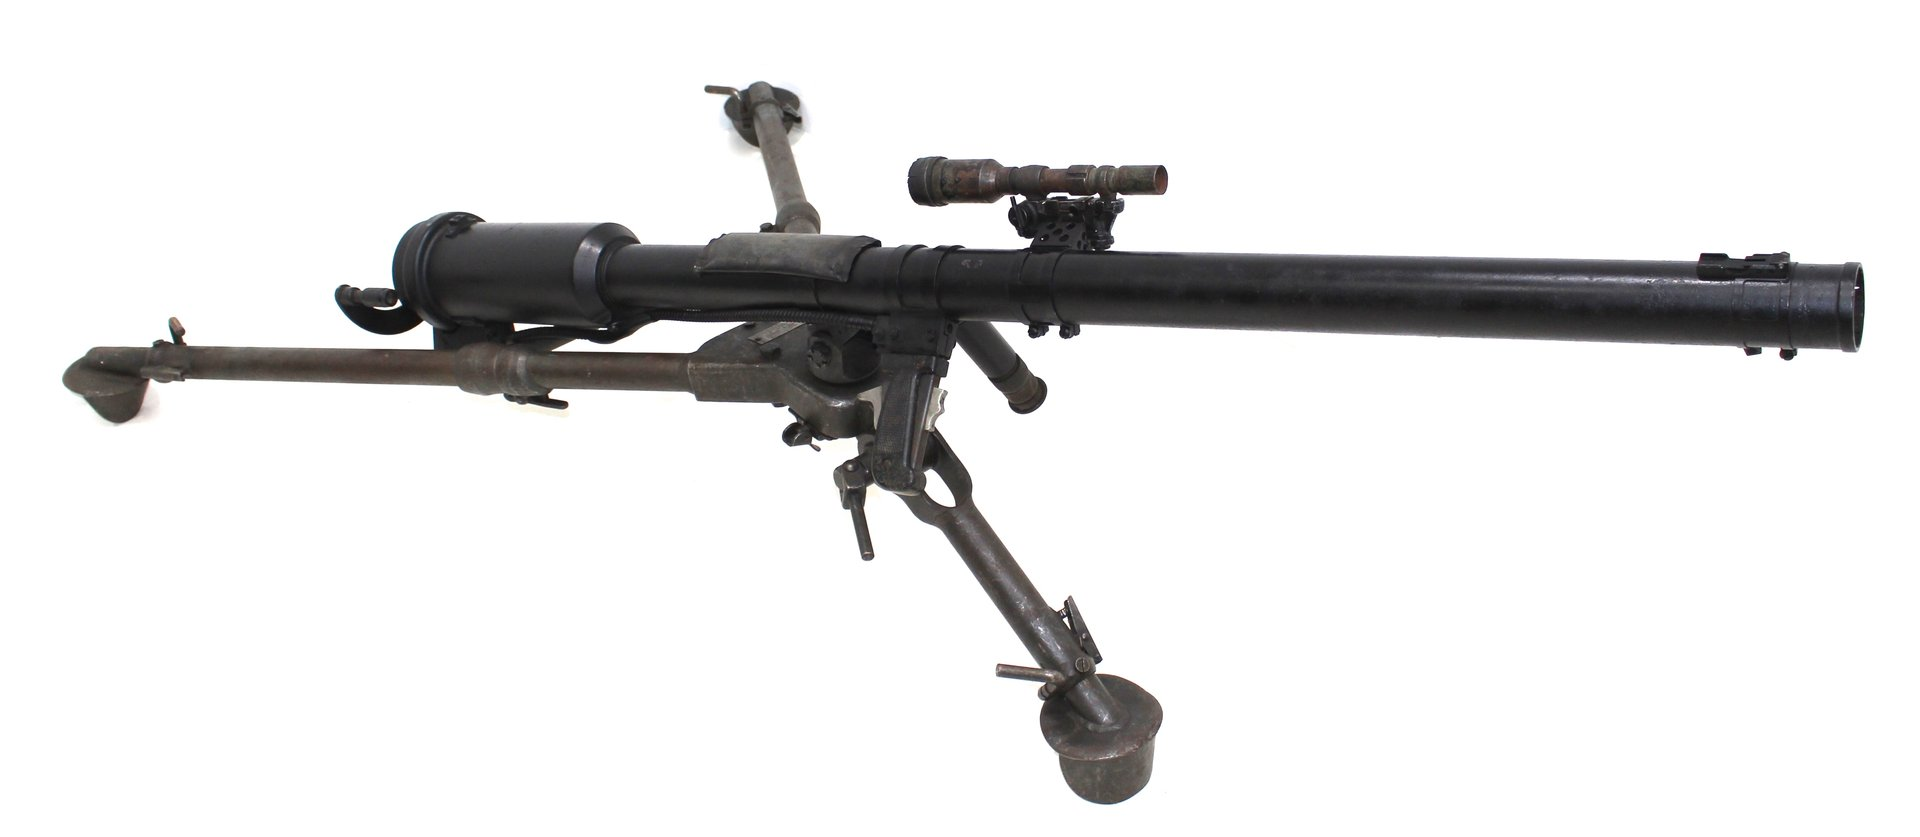 M18 57mm Recoilless Rifle High Quality Background on Wallpapers Vista